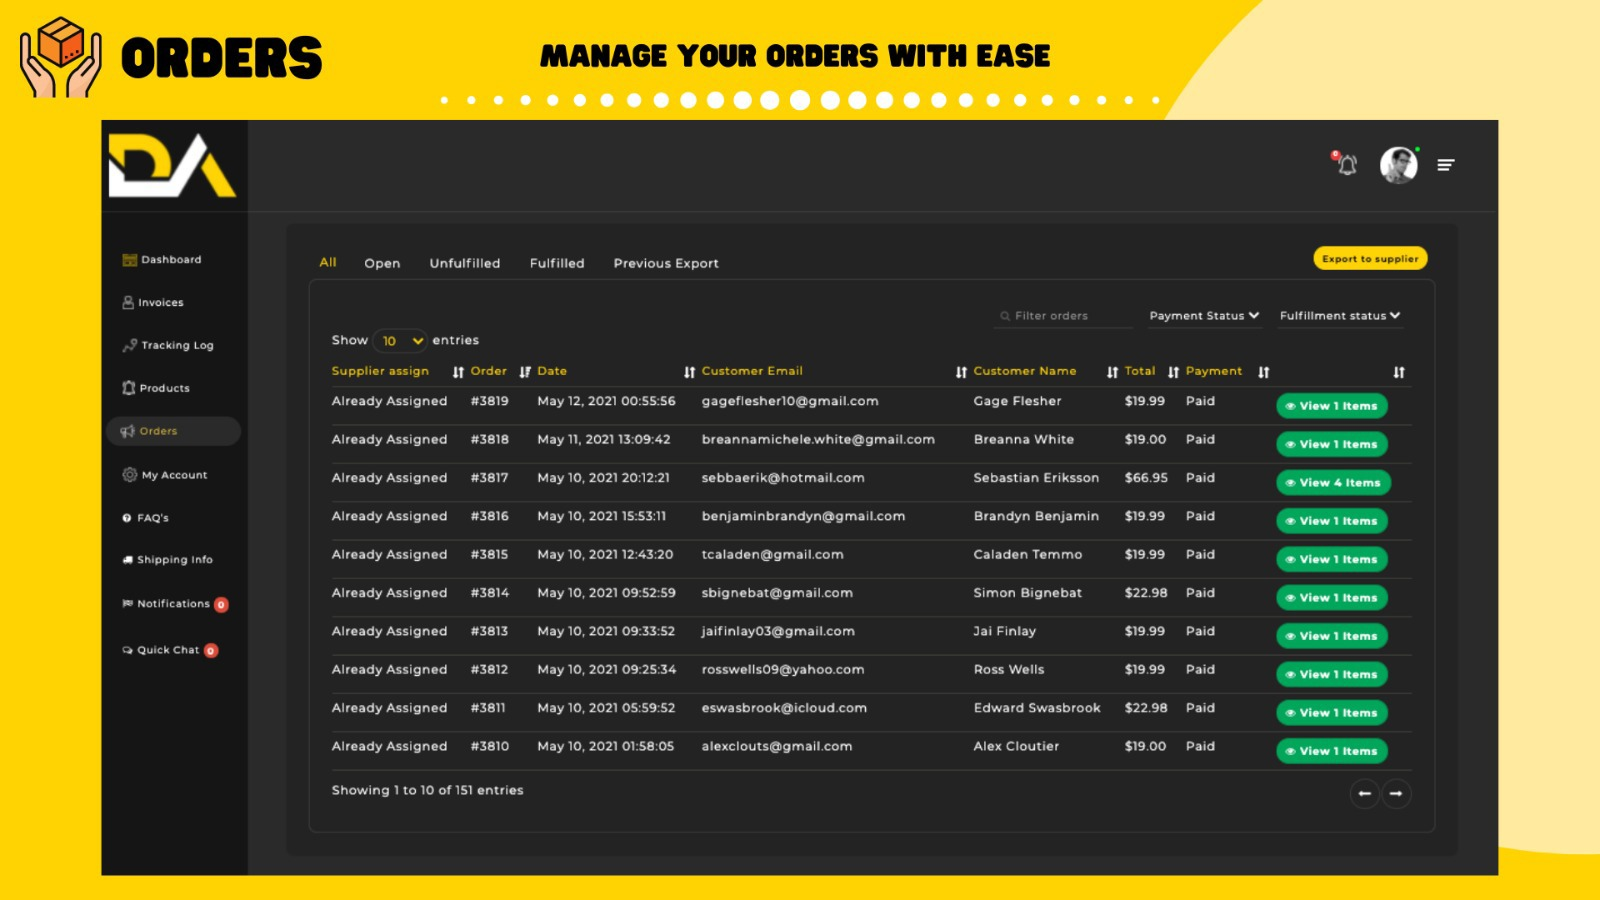 Manage Your Orders With Ease